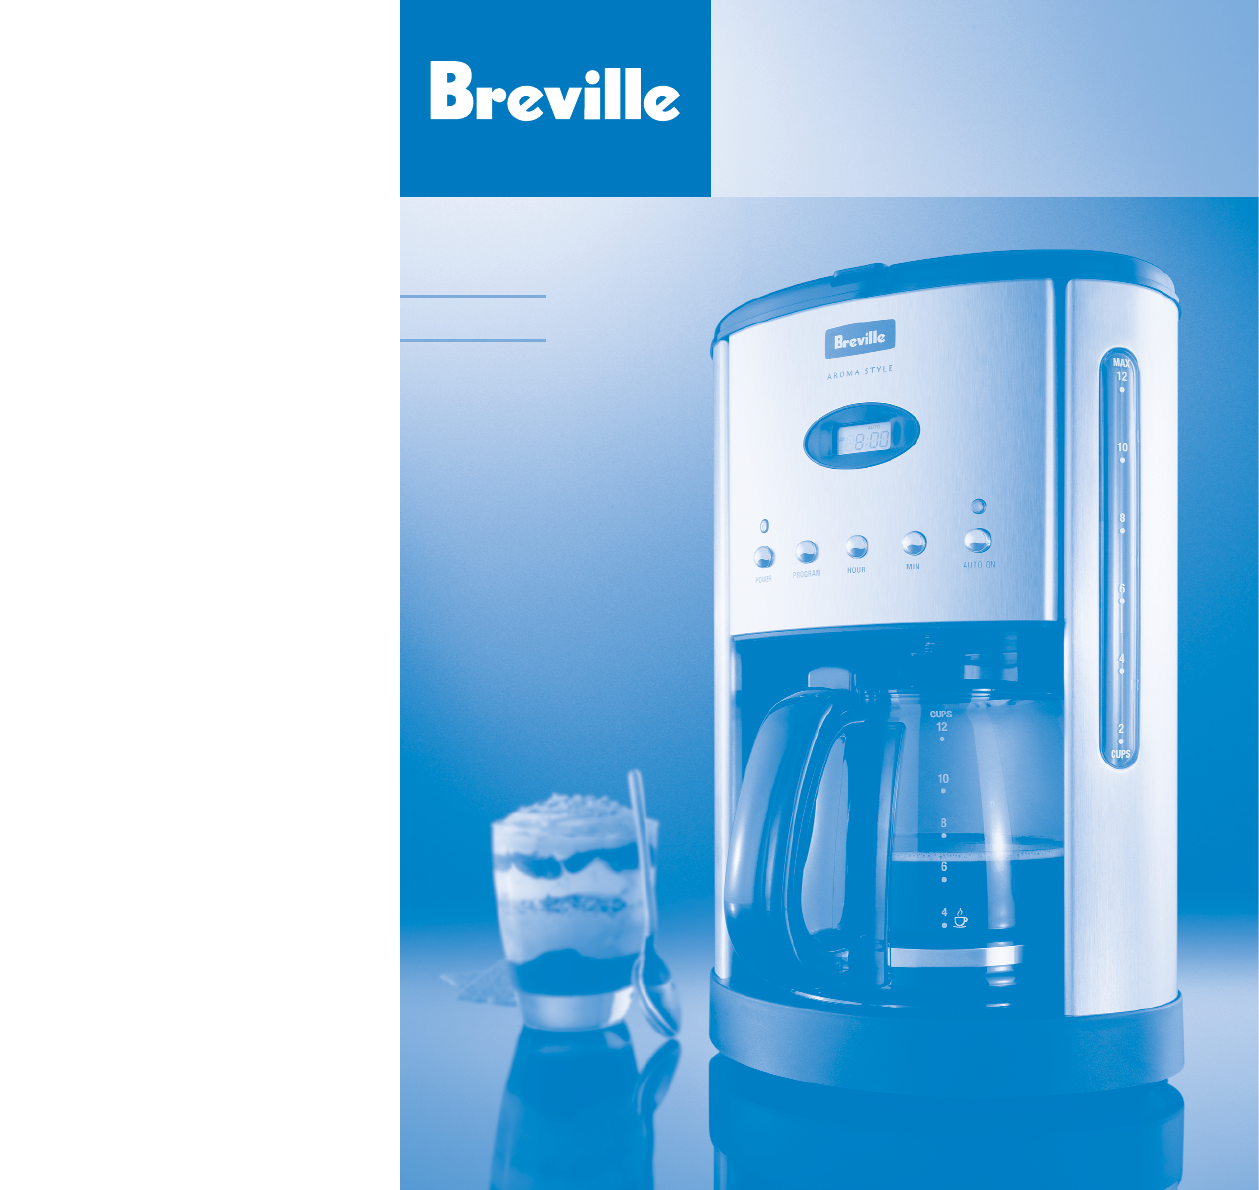 Breville Coffee Maker Descale Instructions : Breville Coffeemaker BCM600 User Guide ManualsOnline.com